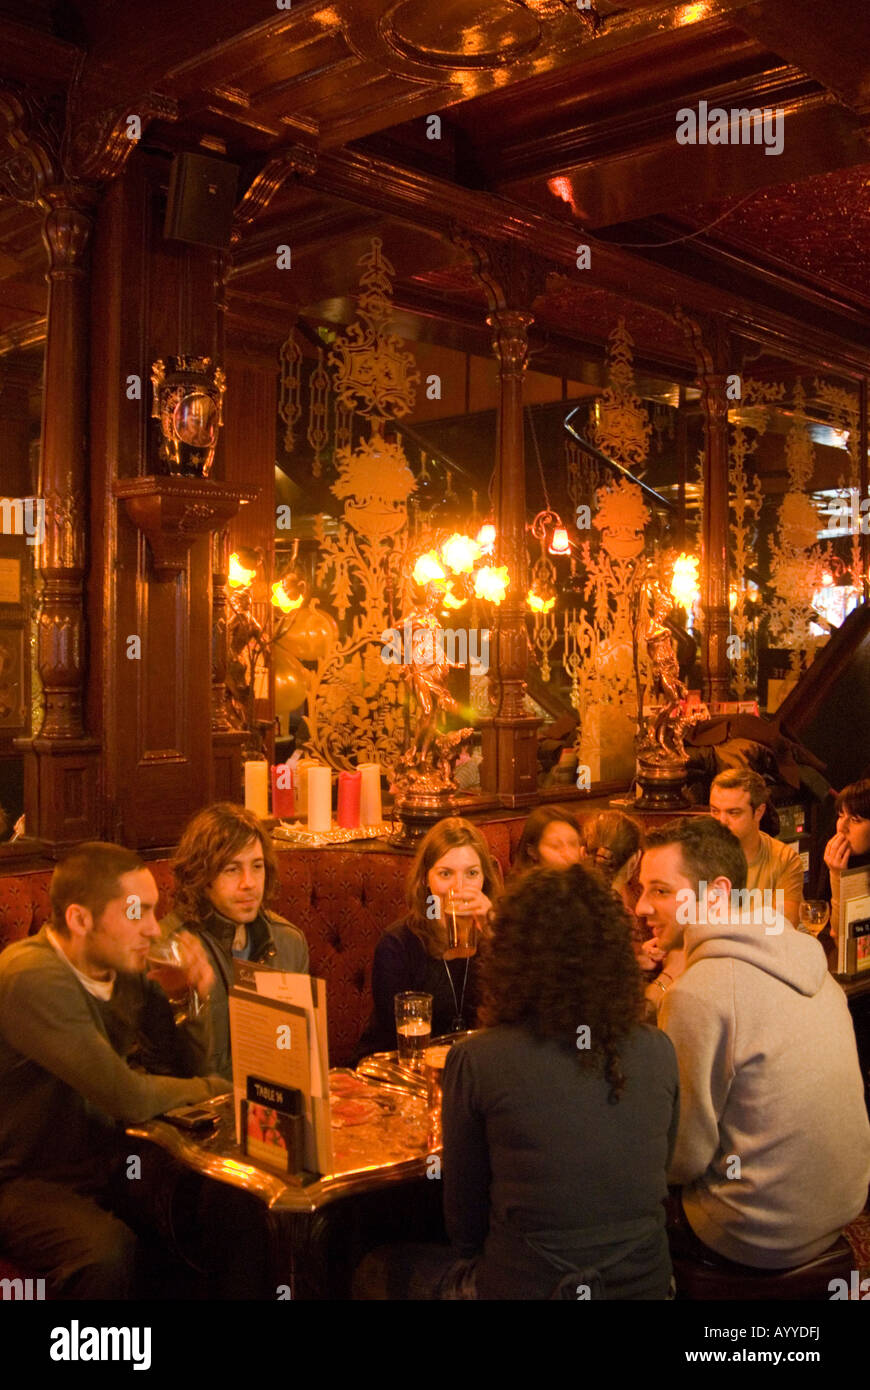 Inside the Salisbury Pub in St Martin's Lane, London England UK - Stock Image